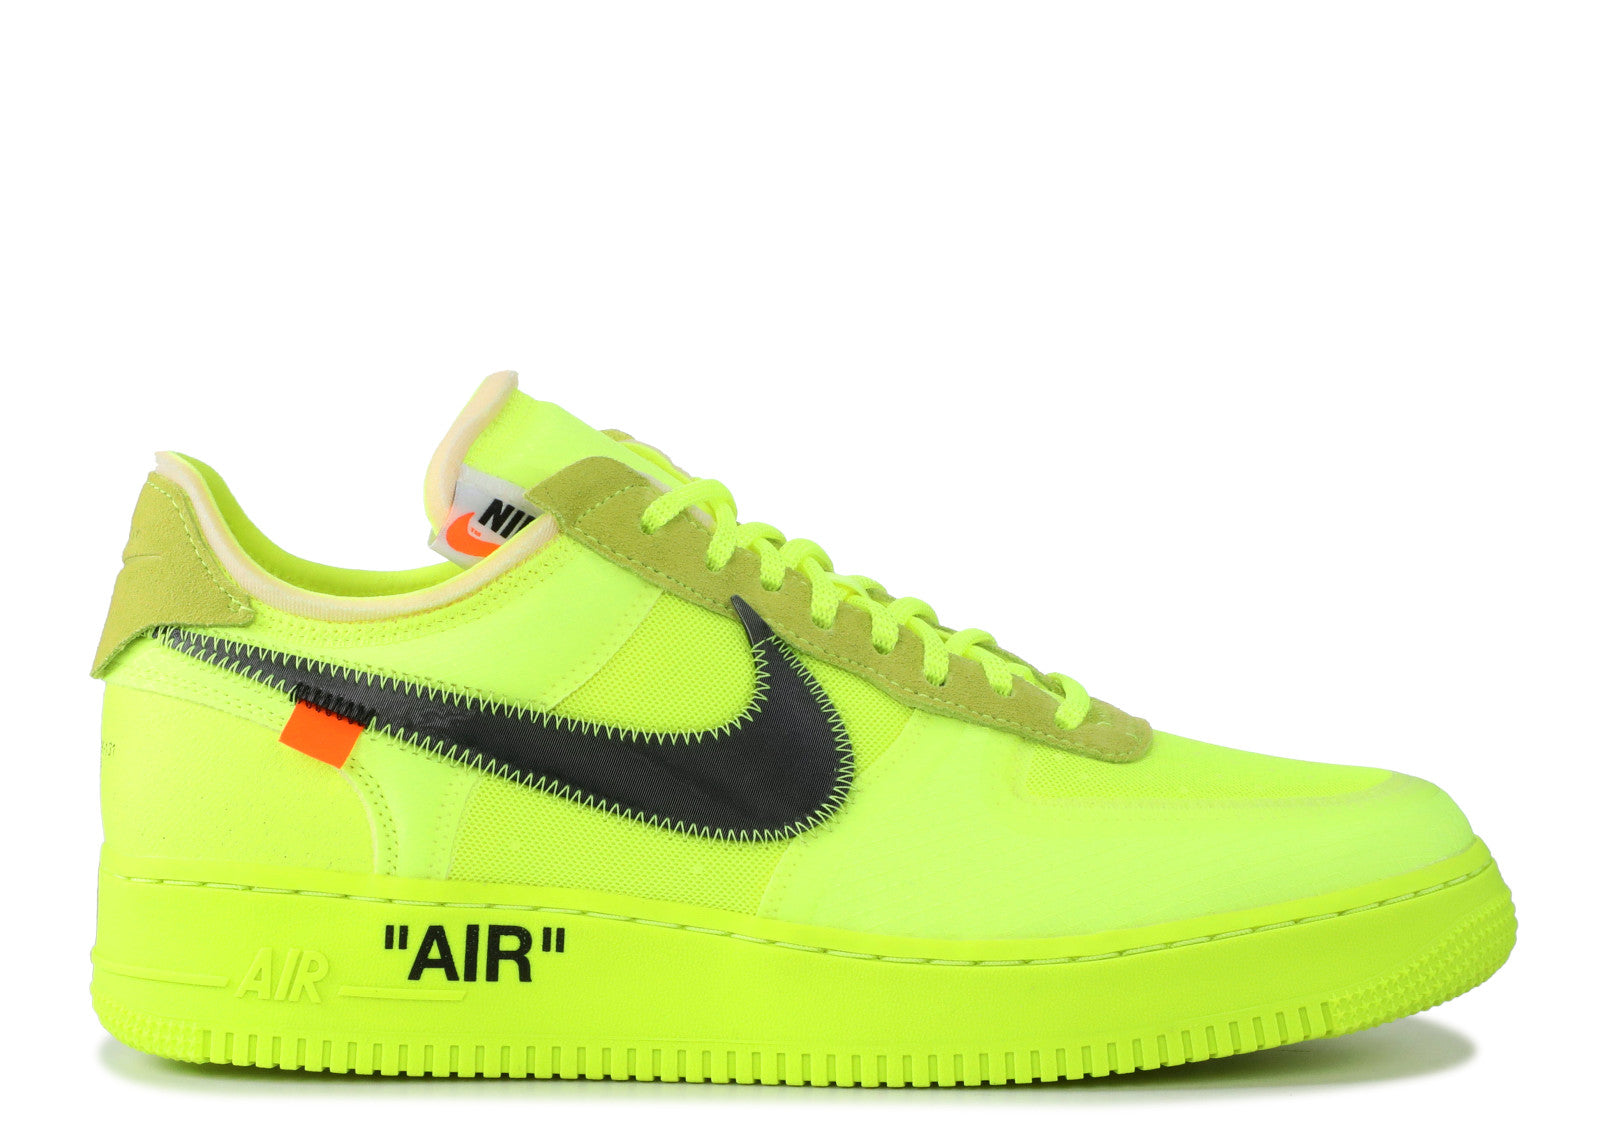 new styles 23baa ba120 NIKE AIR FORCE 1 X OFF-WHITE VOLT – ISPIR